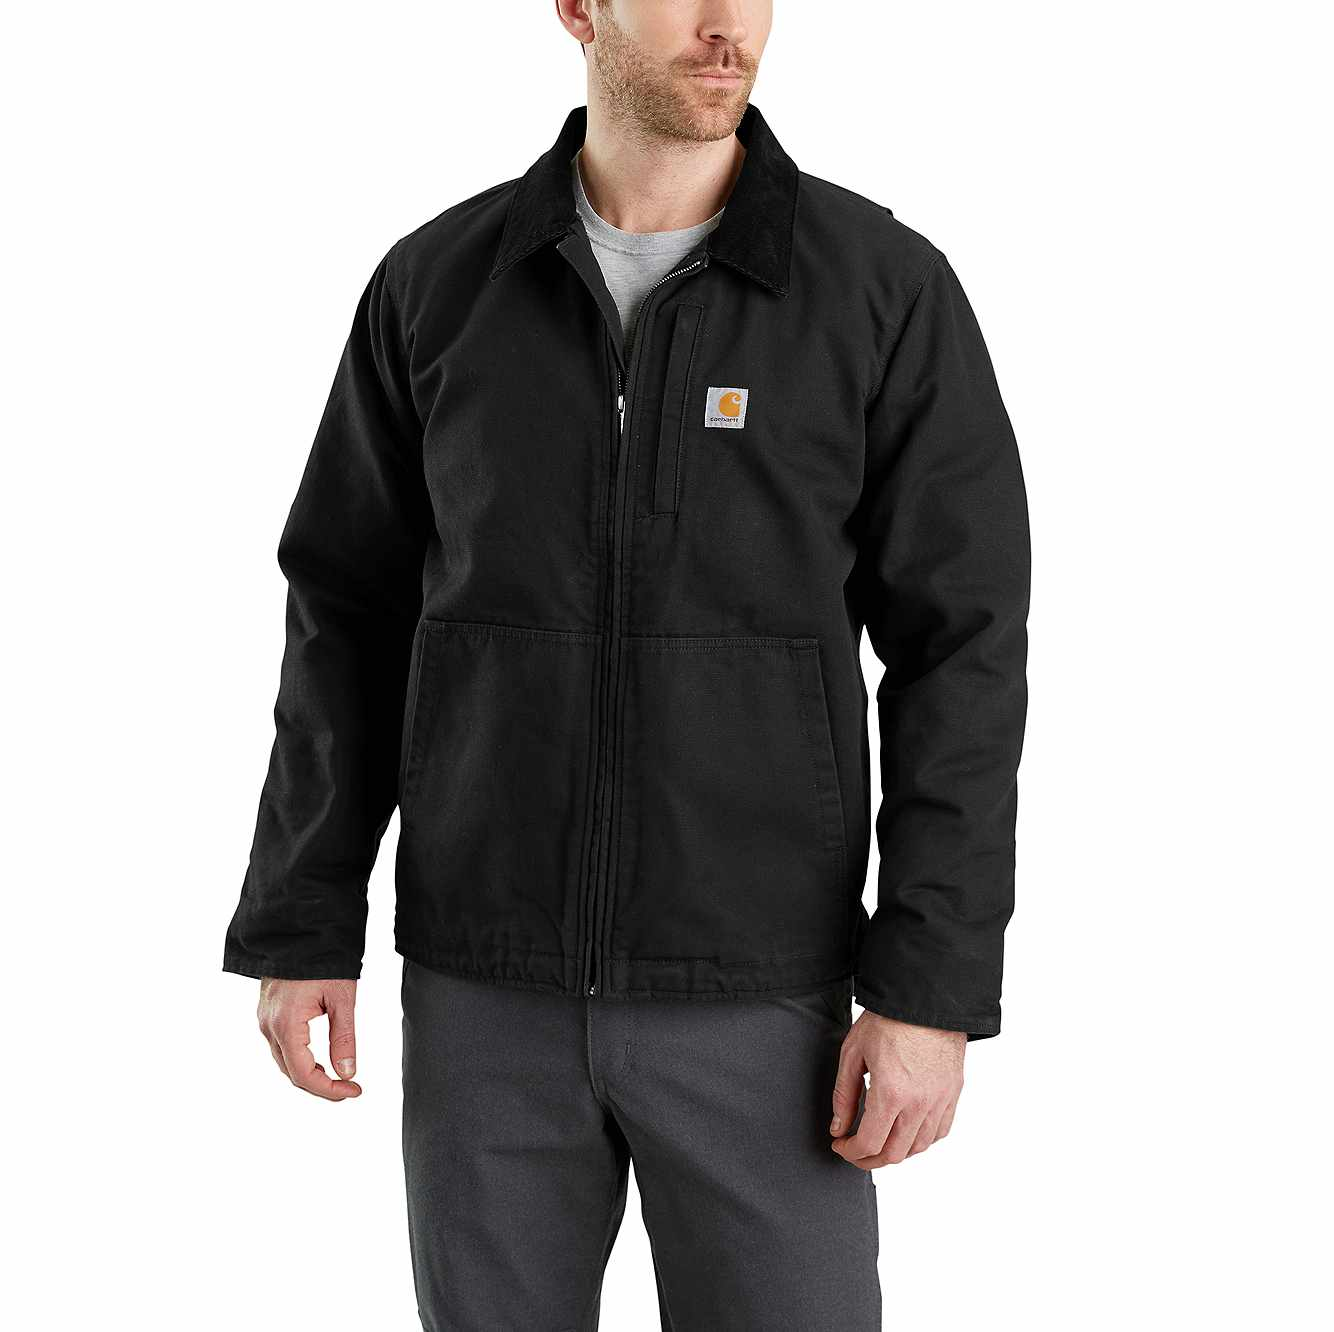 Picture of Full Swing® Armstrong Jacket in Black